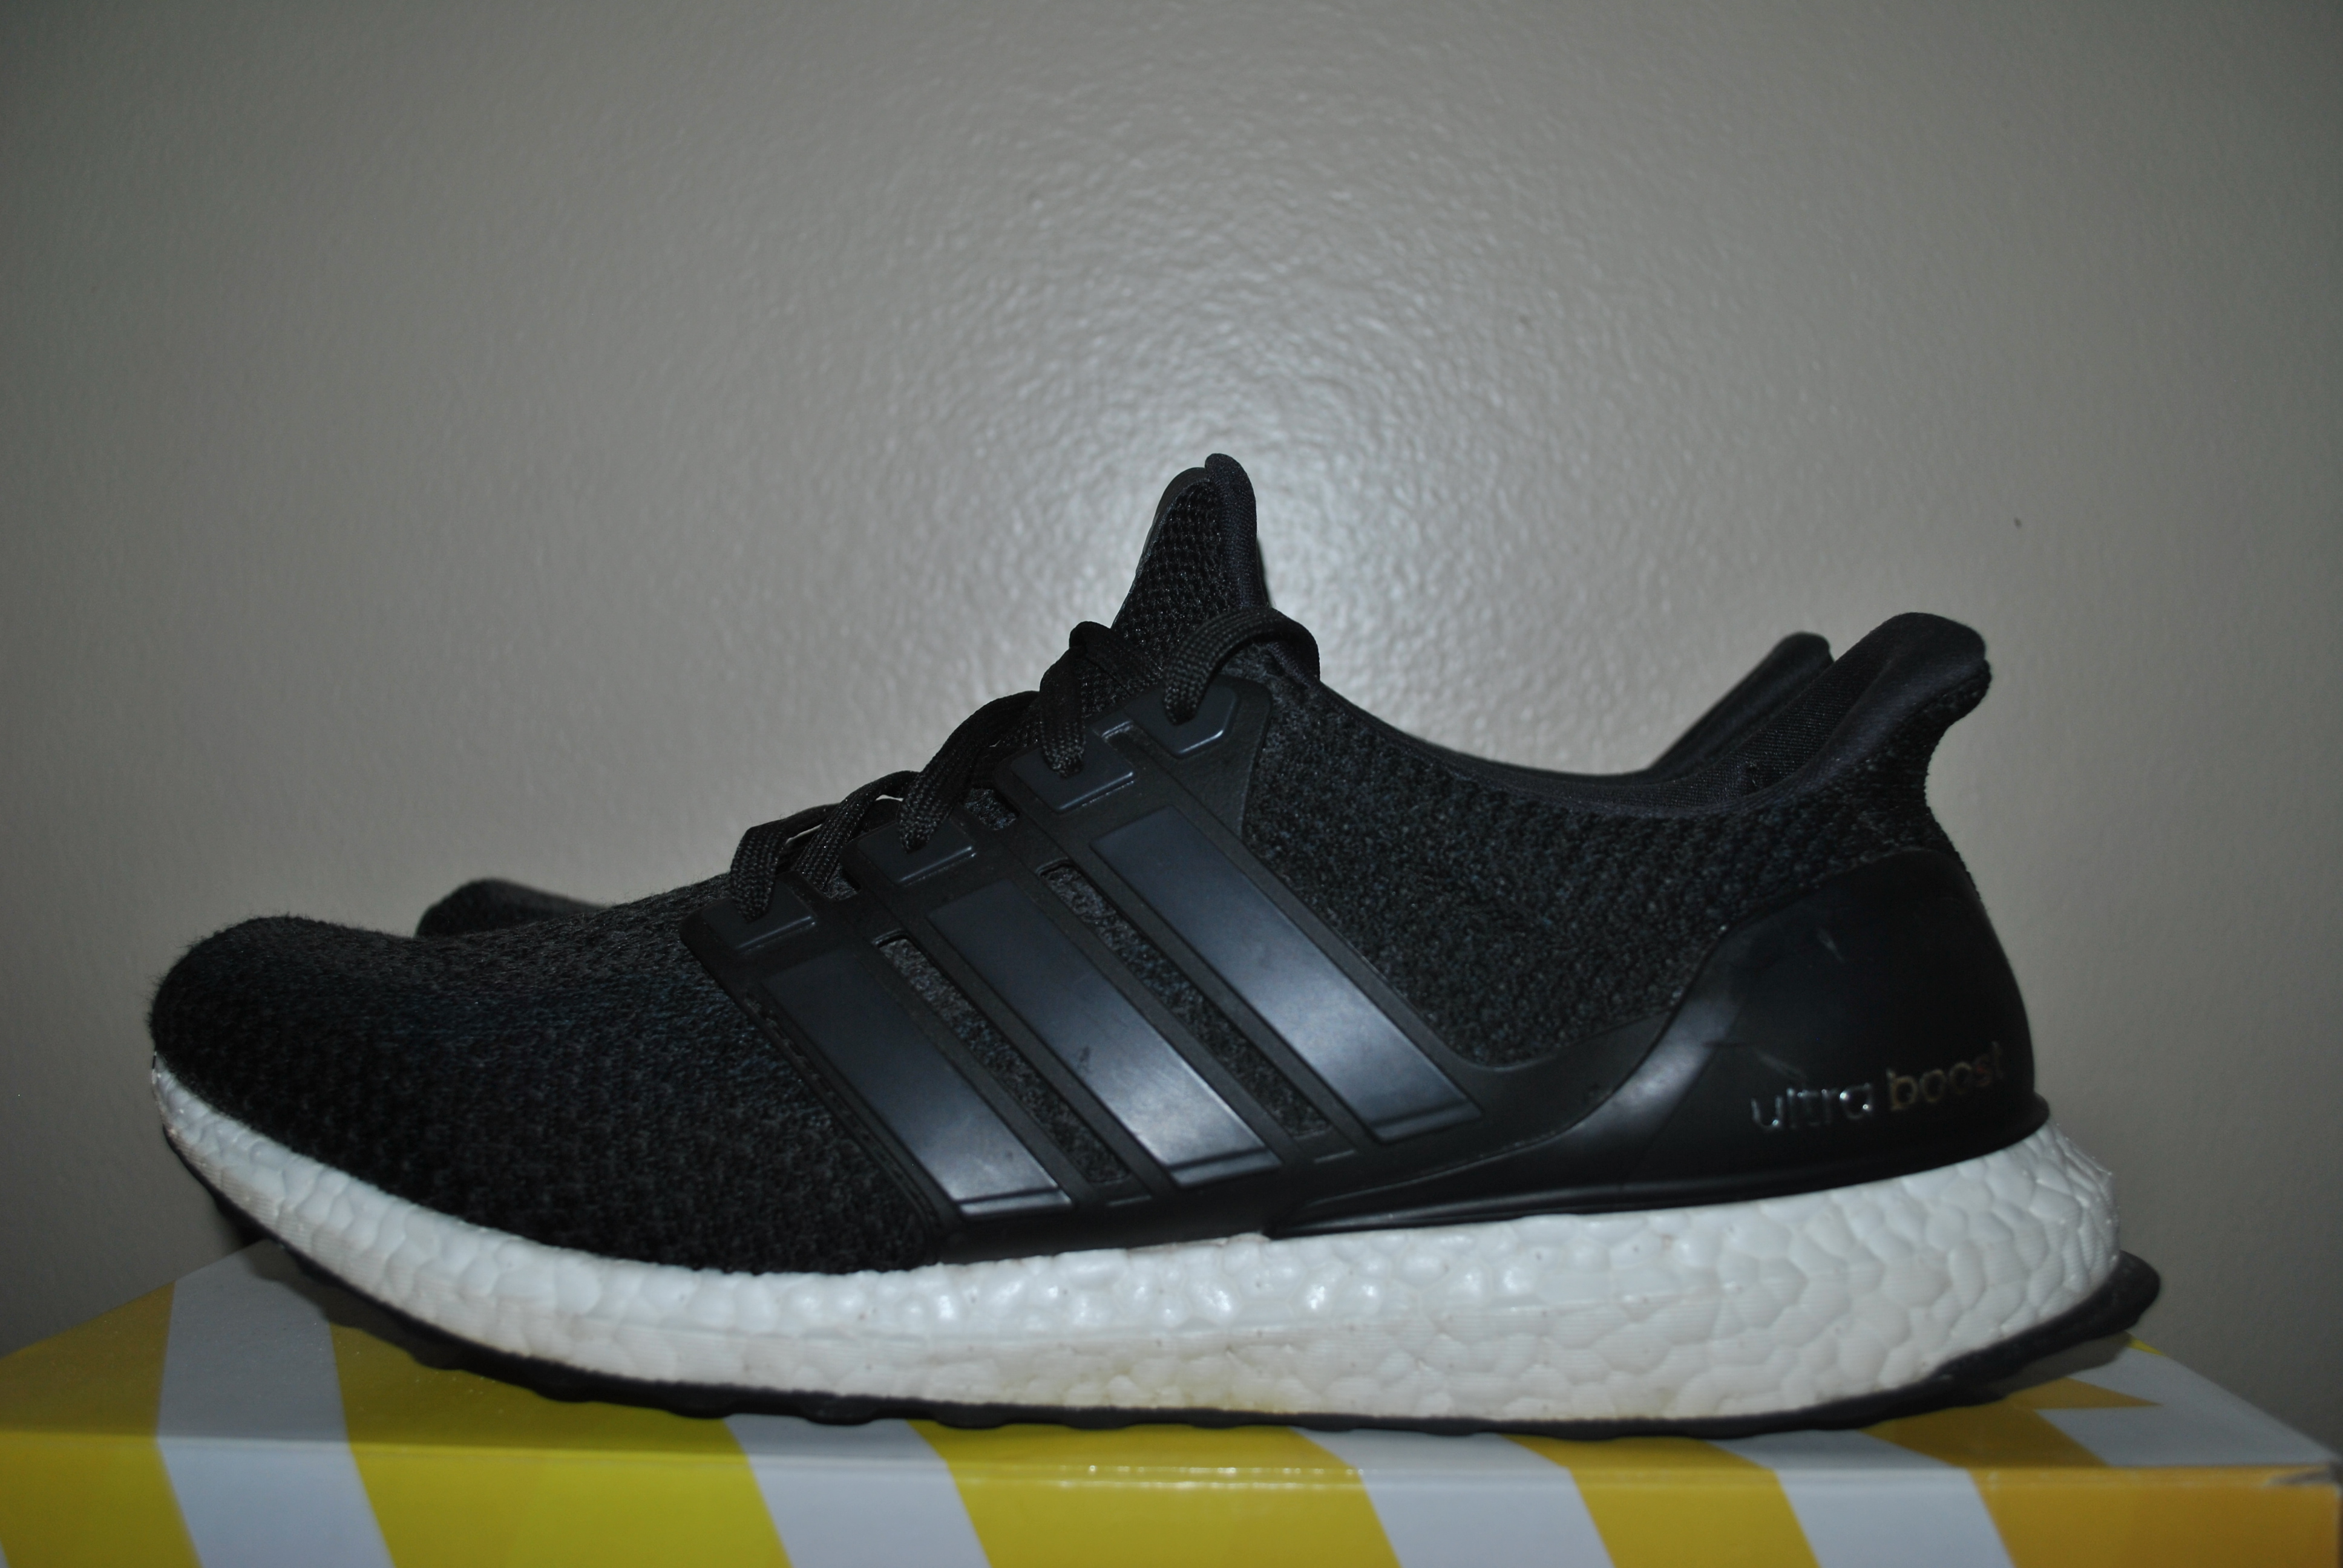 newest c81d3 e0e2a Adidas Ultraboost Ultra boost 2.0 Size 10.5 BB3909 Black/White USED